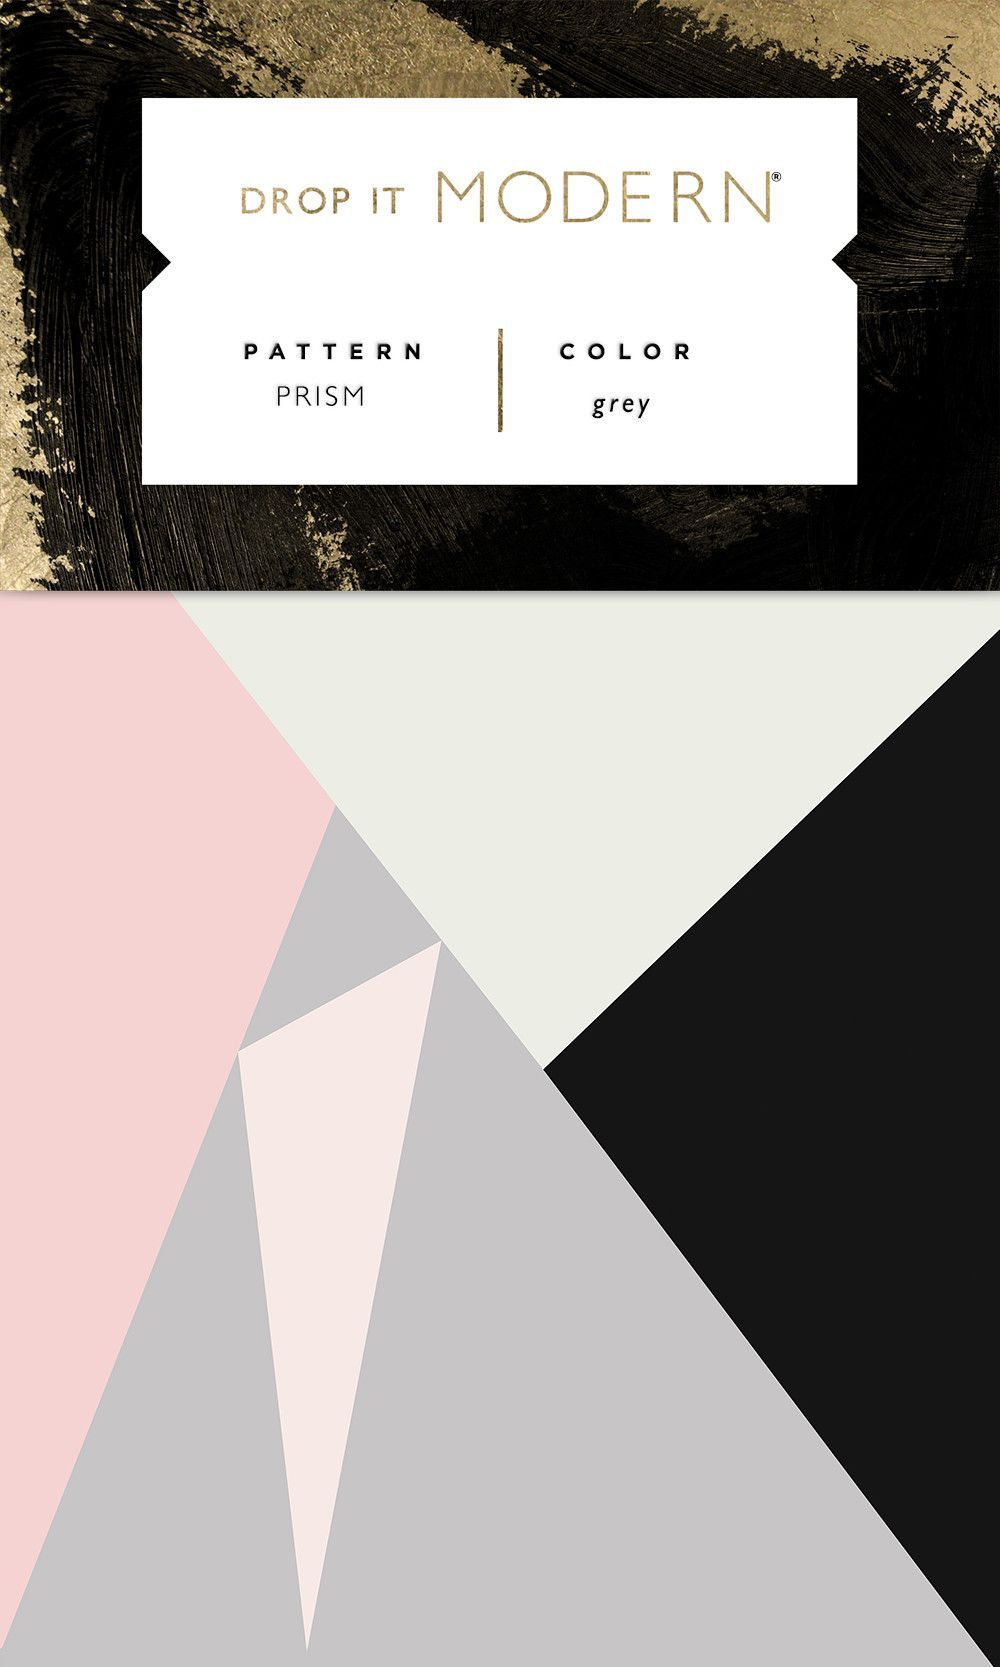 Pinch Pleat Drapery Prism Grey Products Pinterest Products